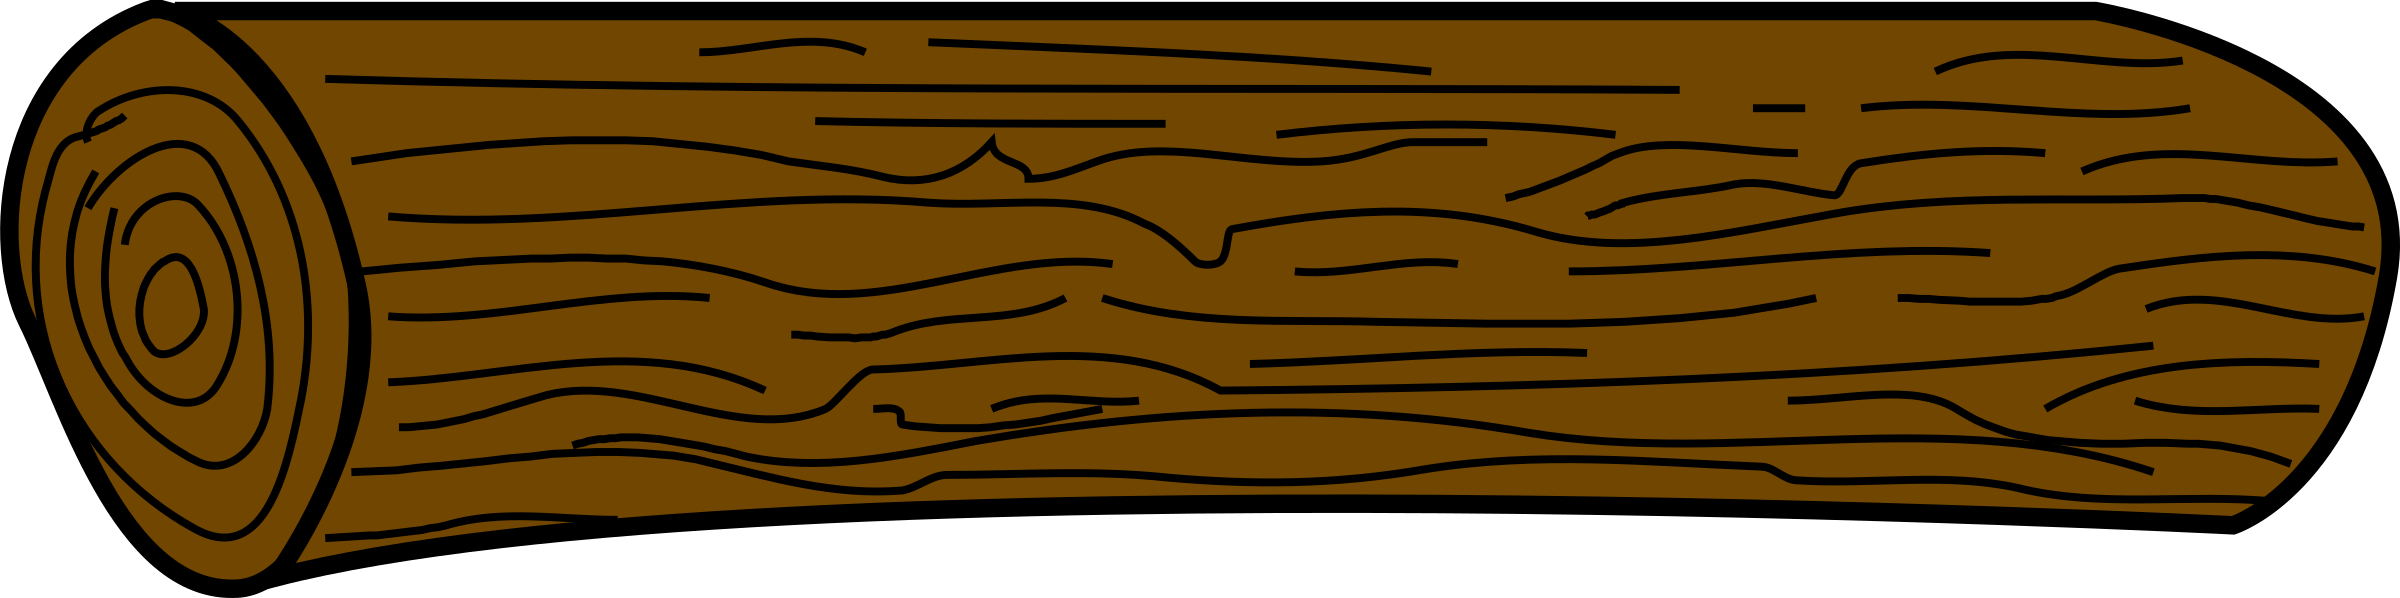 Log clipart. With regard to free